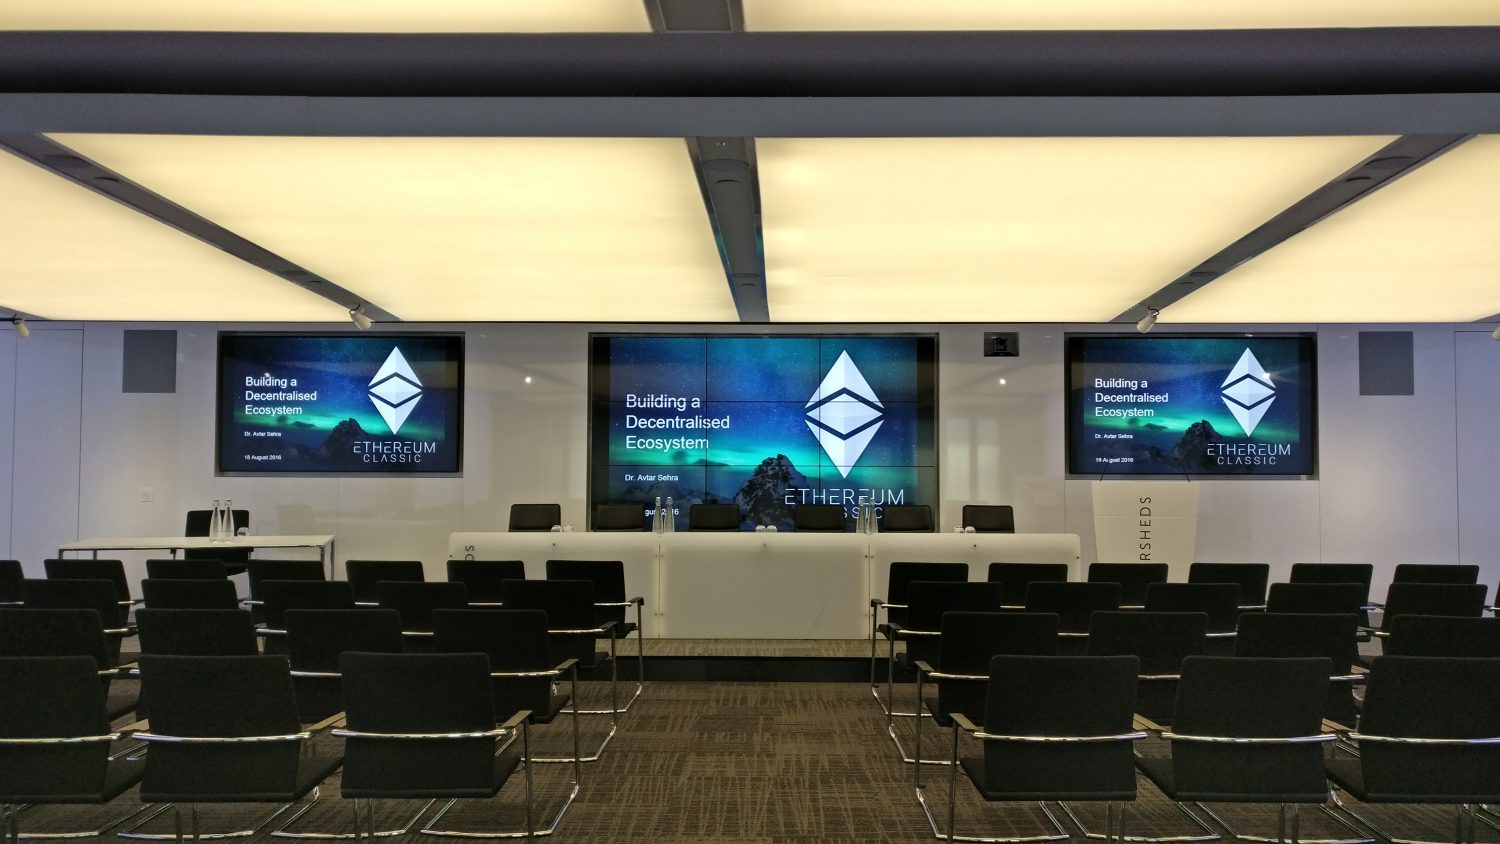 ethereum-classic-conference.